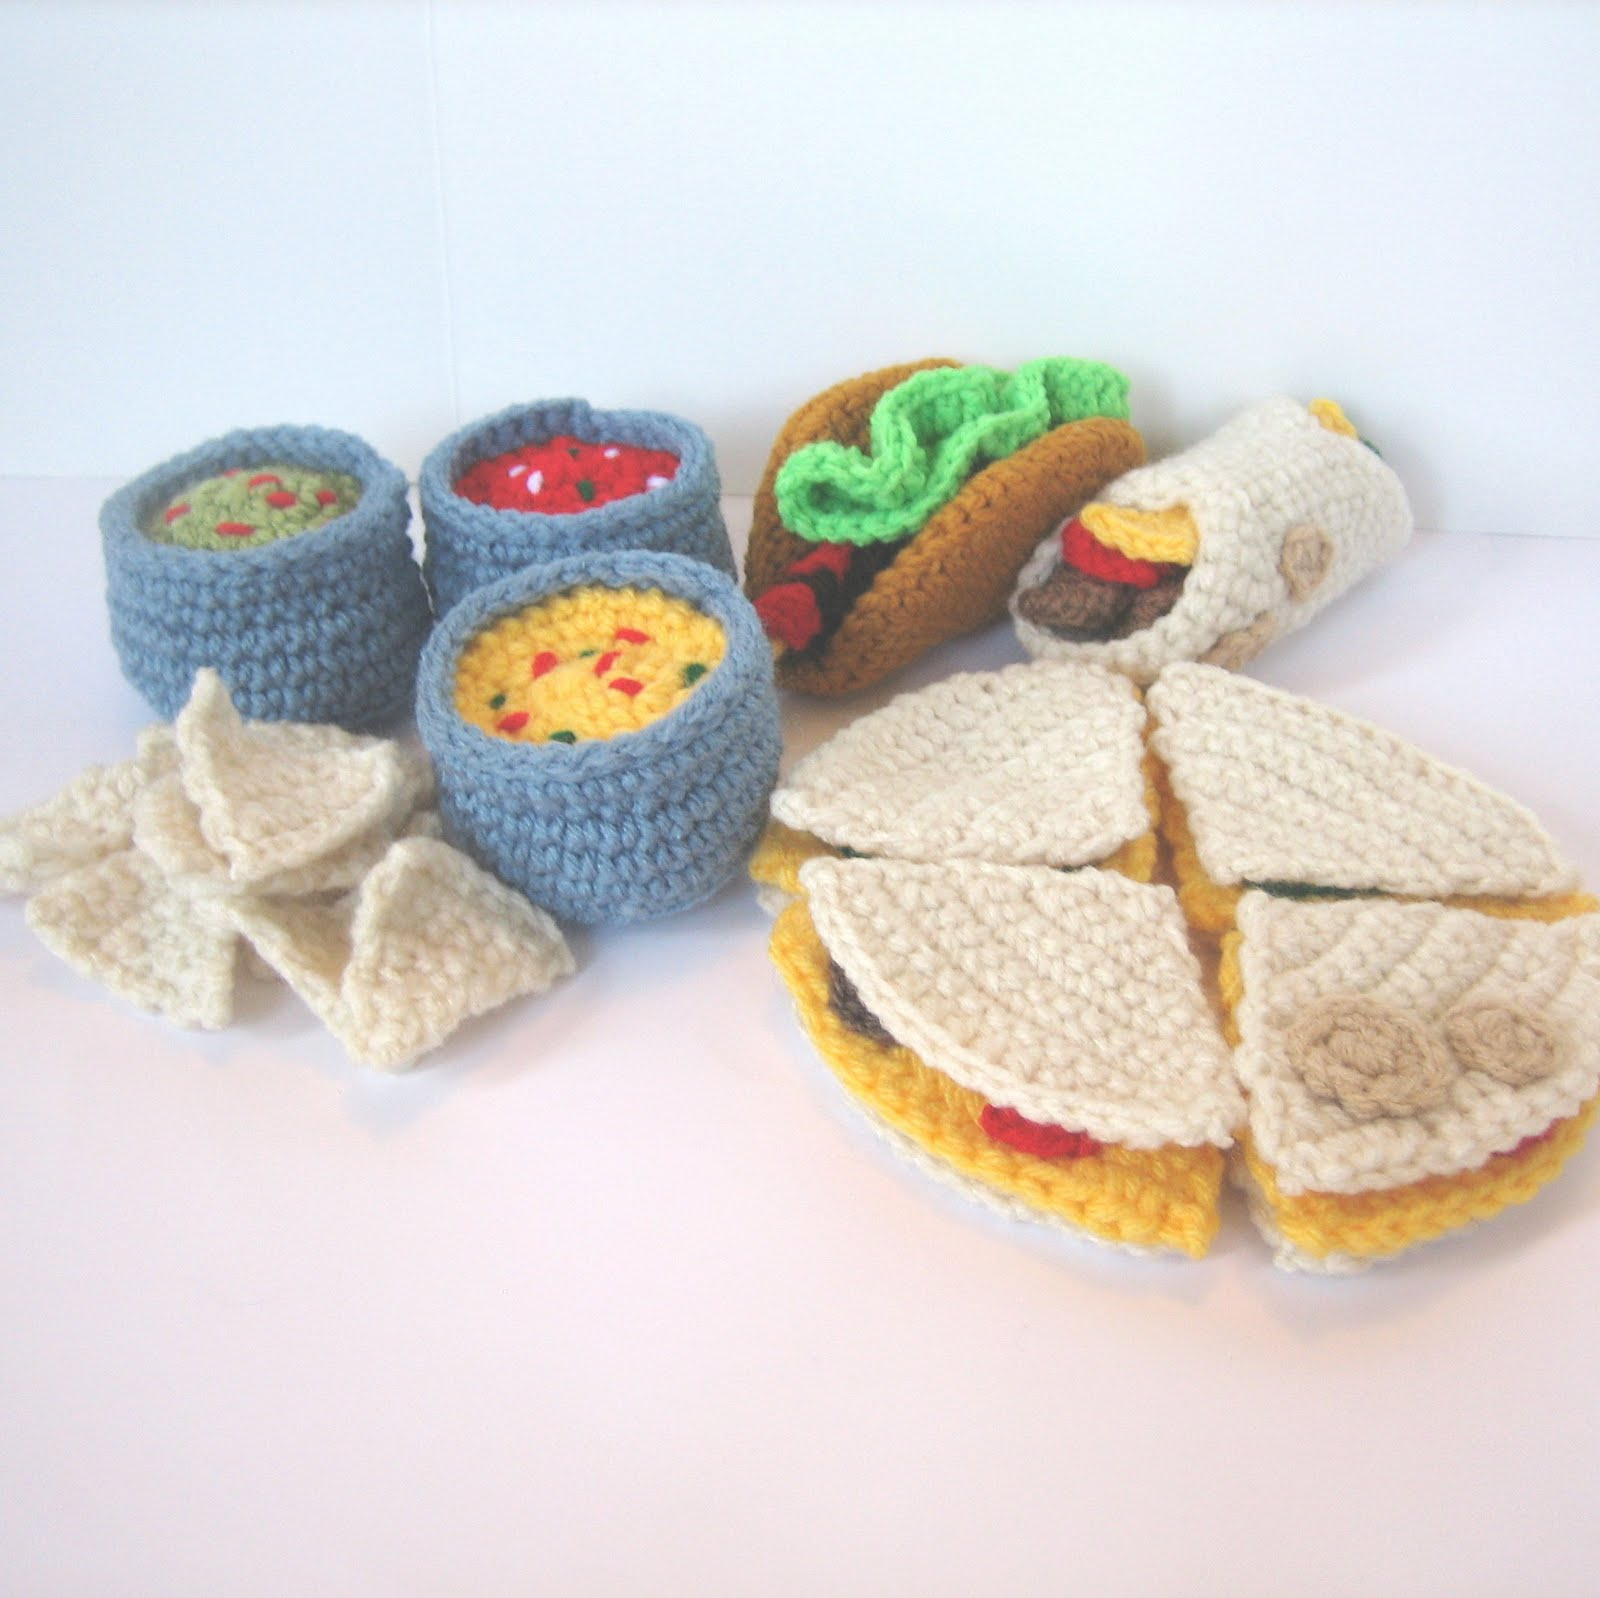 CROCHET N PLAY DESIGNS: New Crochet Pattern: Mexican Food